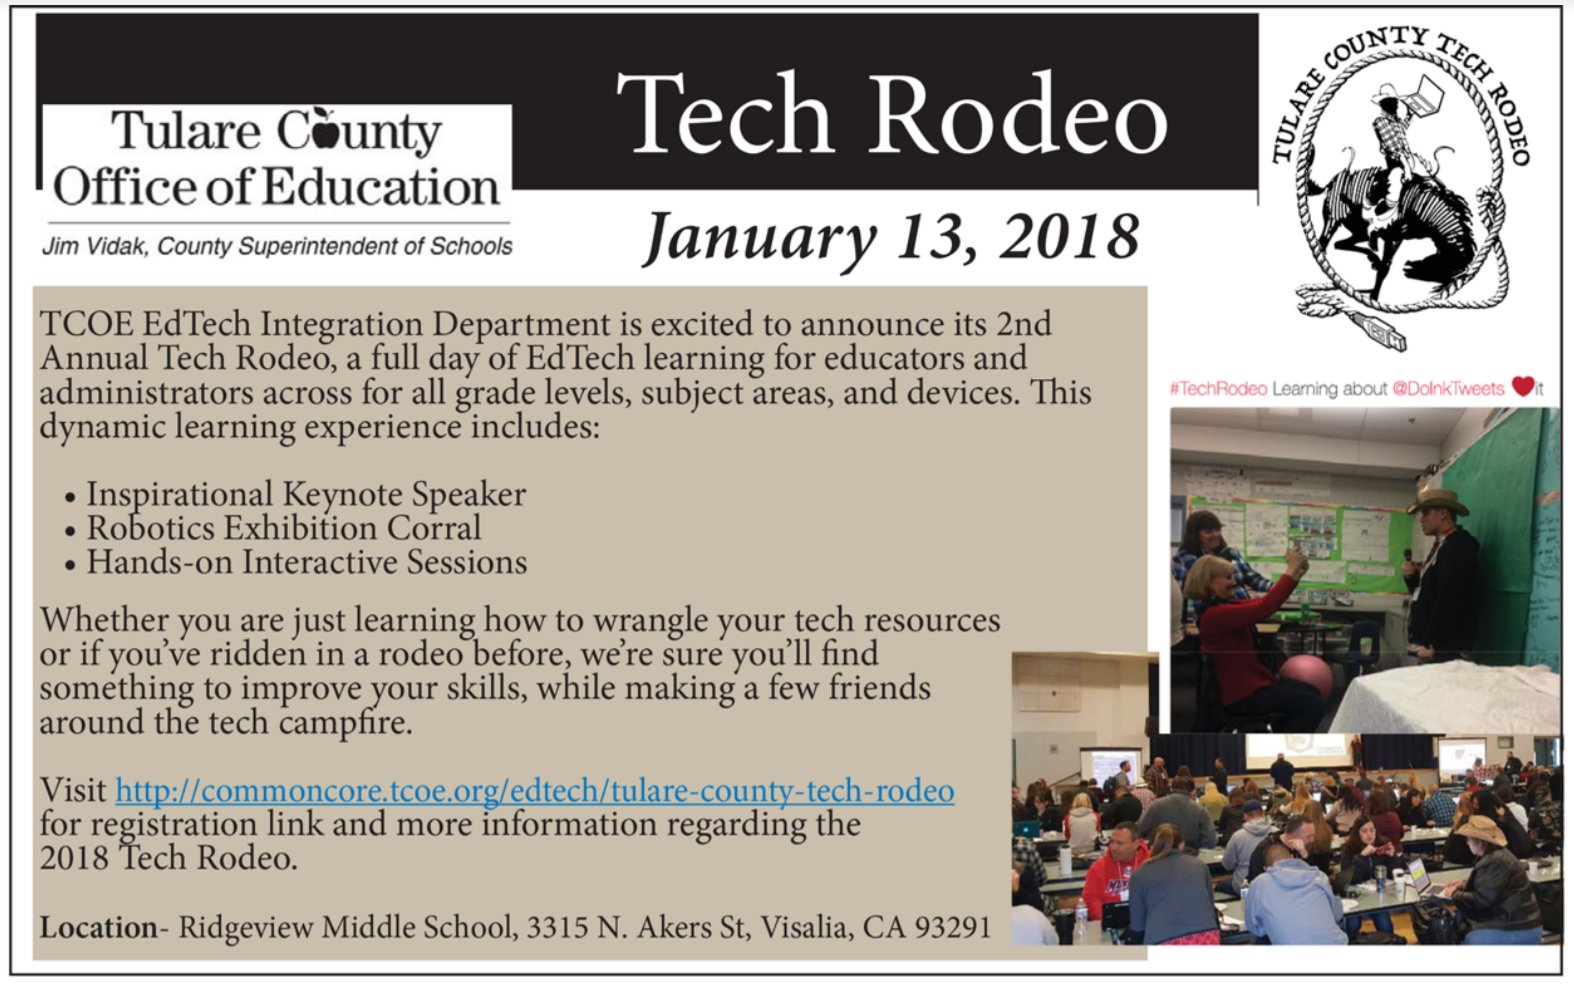 Howdy, #cvtechtalk! Join us for #techrodeo Sat, 1/13 in Central Cali. Info: https://t.co/aJQgLWVy4K Got Summer PD? https://t.co/ixPlyqGxmG https://t.co/fOgrgXs5eR